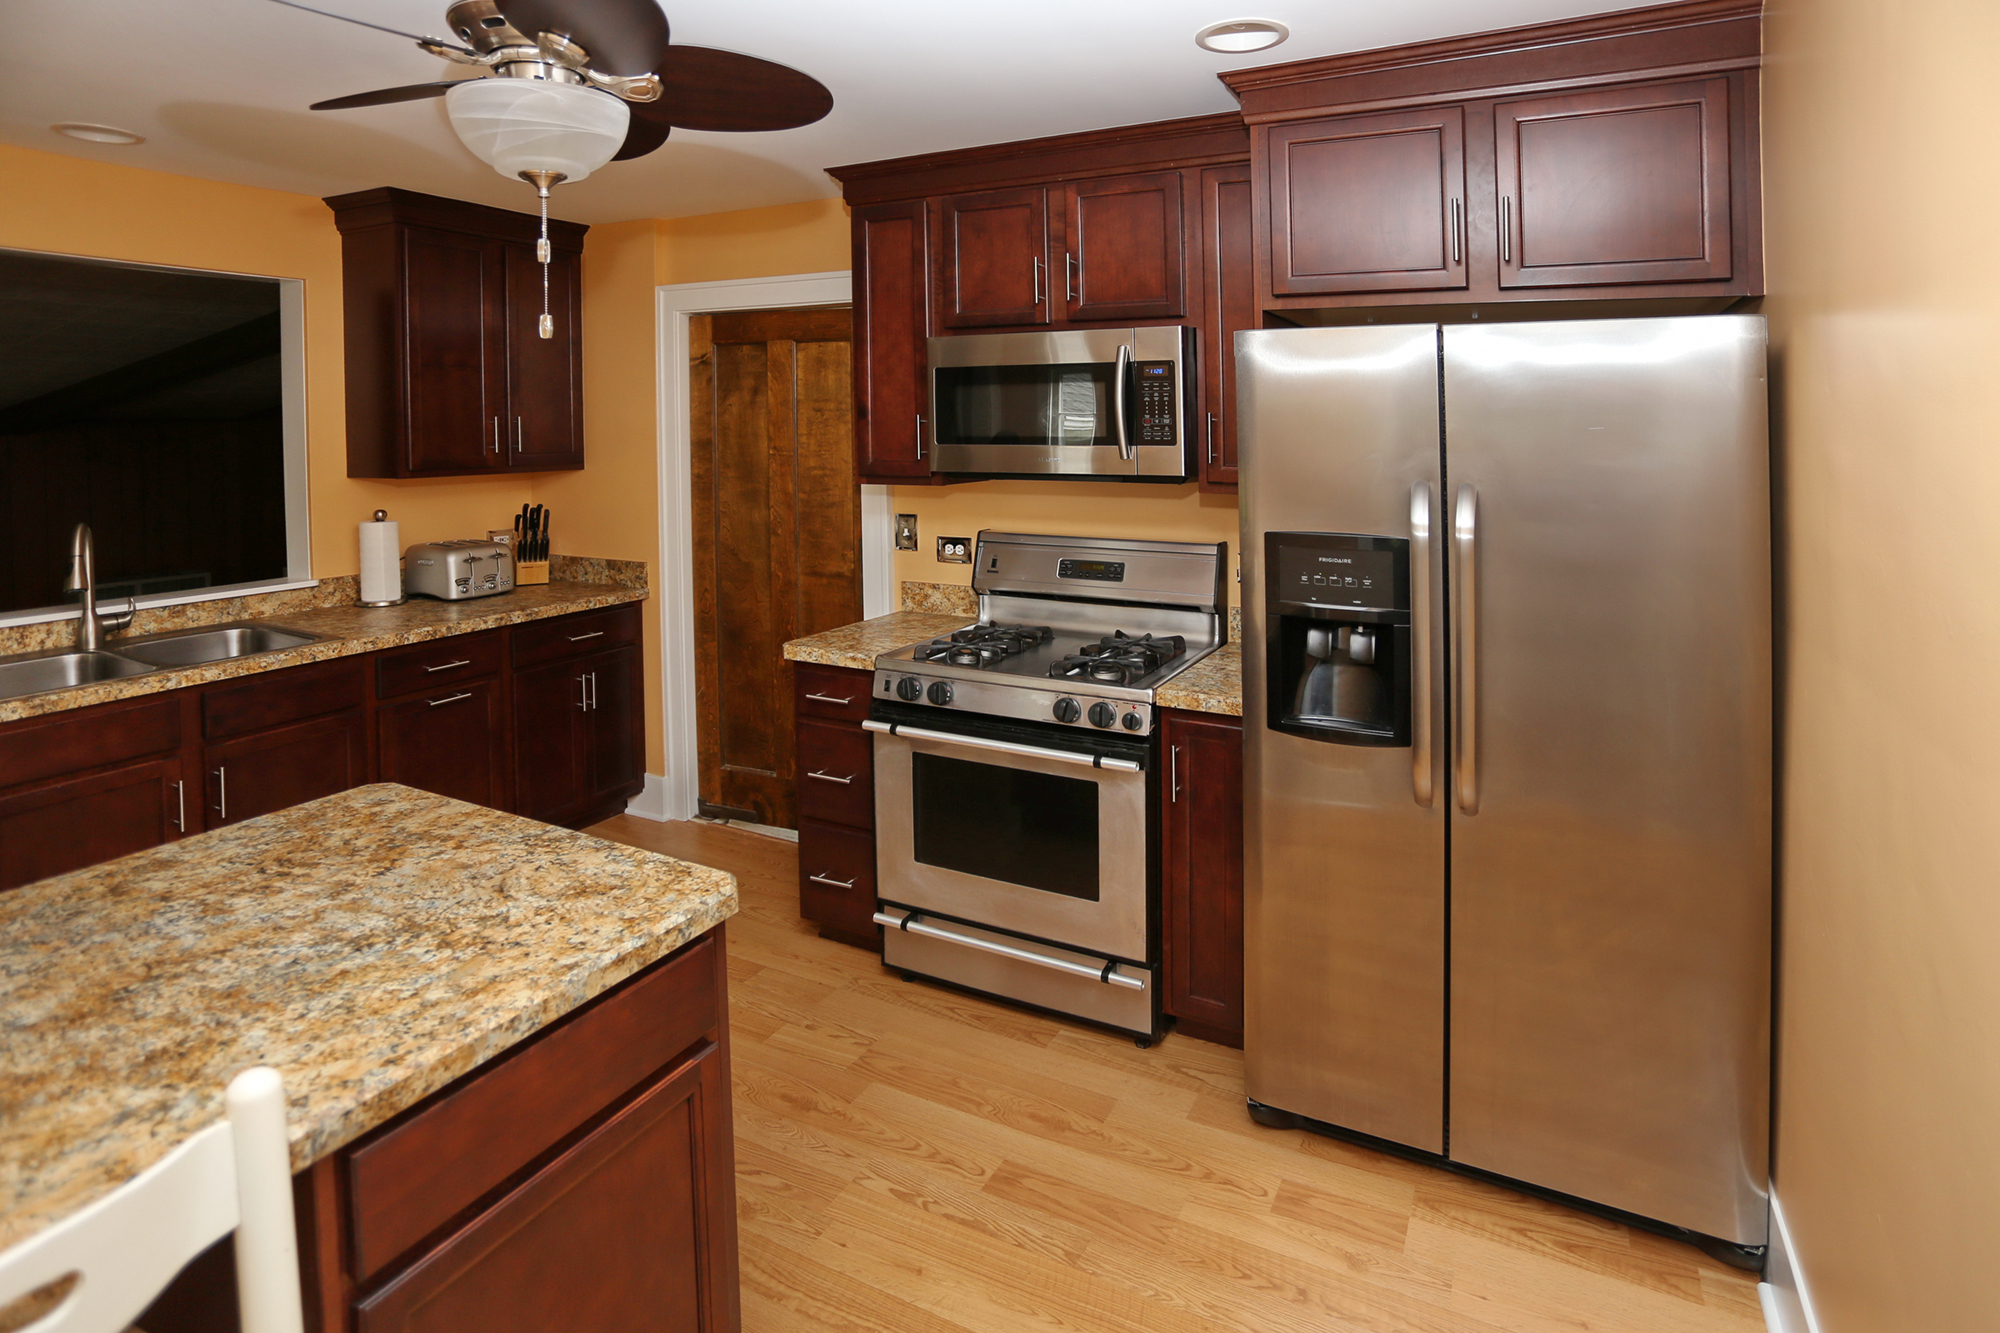 Ugly Laminate Kitchen Cabinets